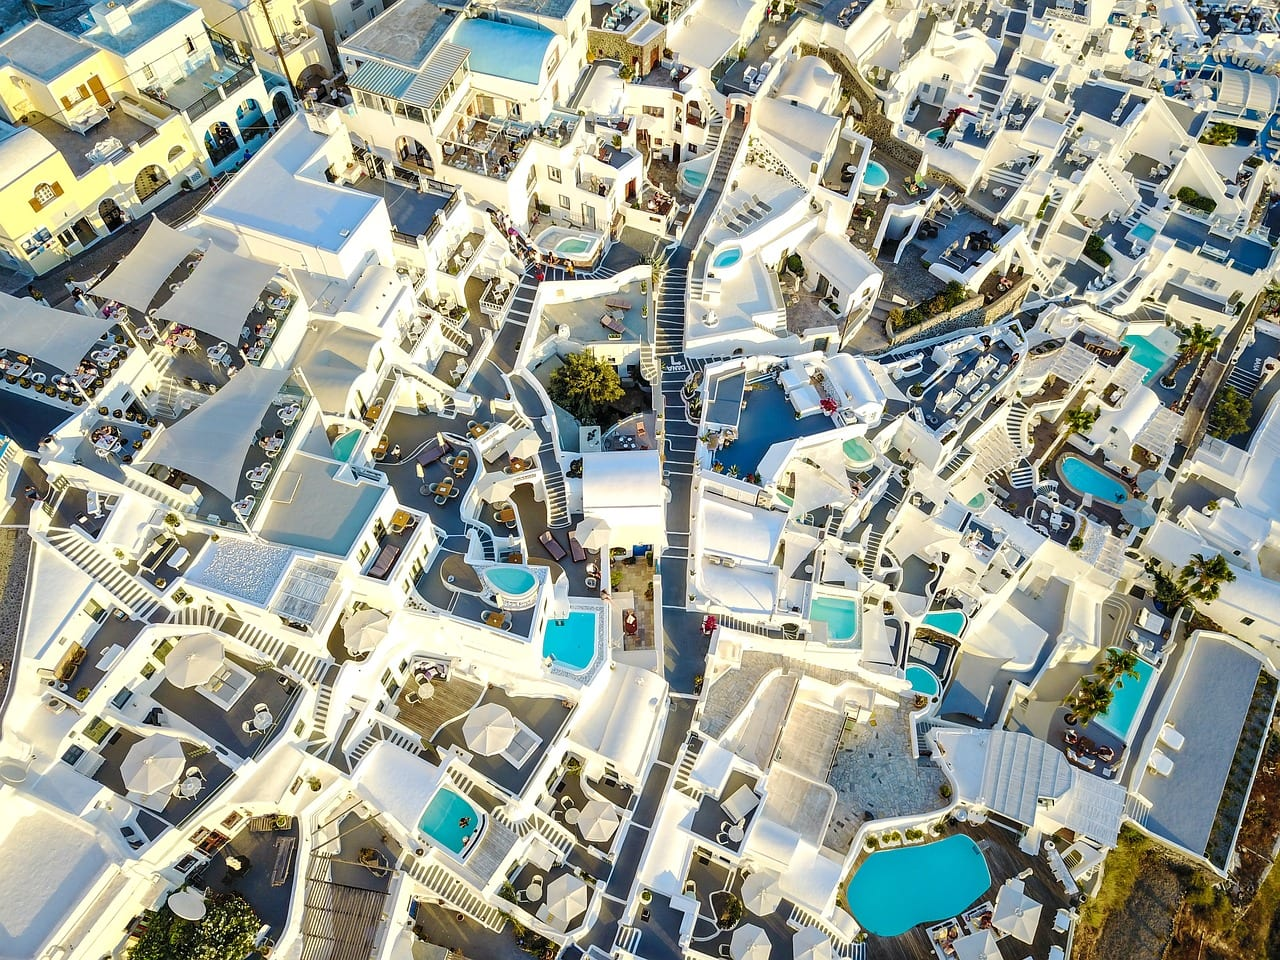 A birds eye view of Santorini